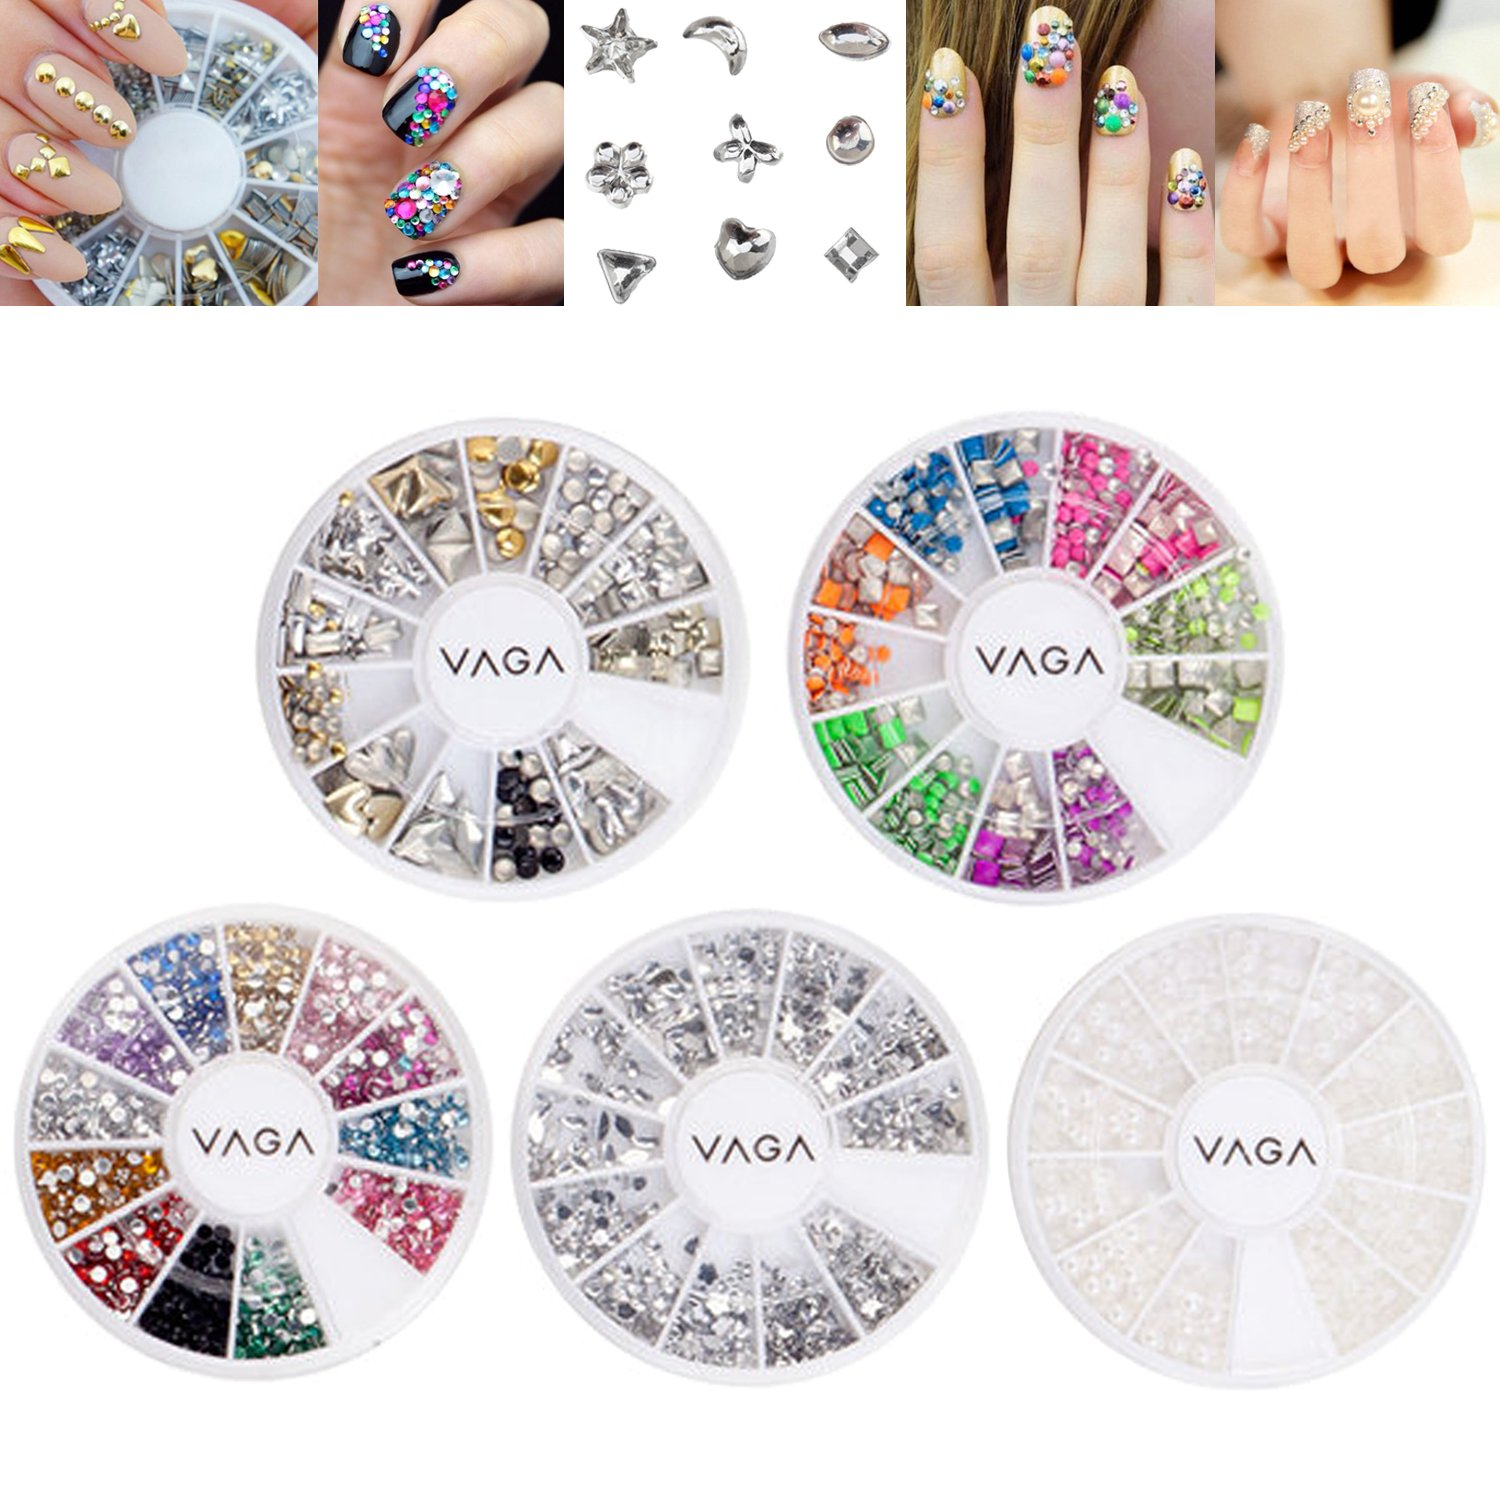 Amazing Value Set Kit of 5 High Quality Manicure 3D Nail Art Decorations Wheels With Rhinestones / Gemstones / Crystals / Jewels, Metal Studs, Pearls / Beads In Different Shapes And Colours By VAGA®